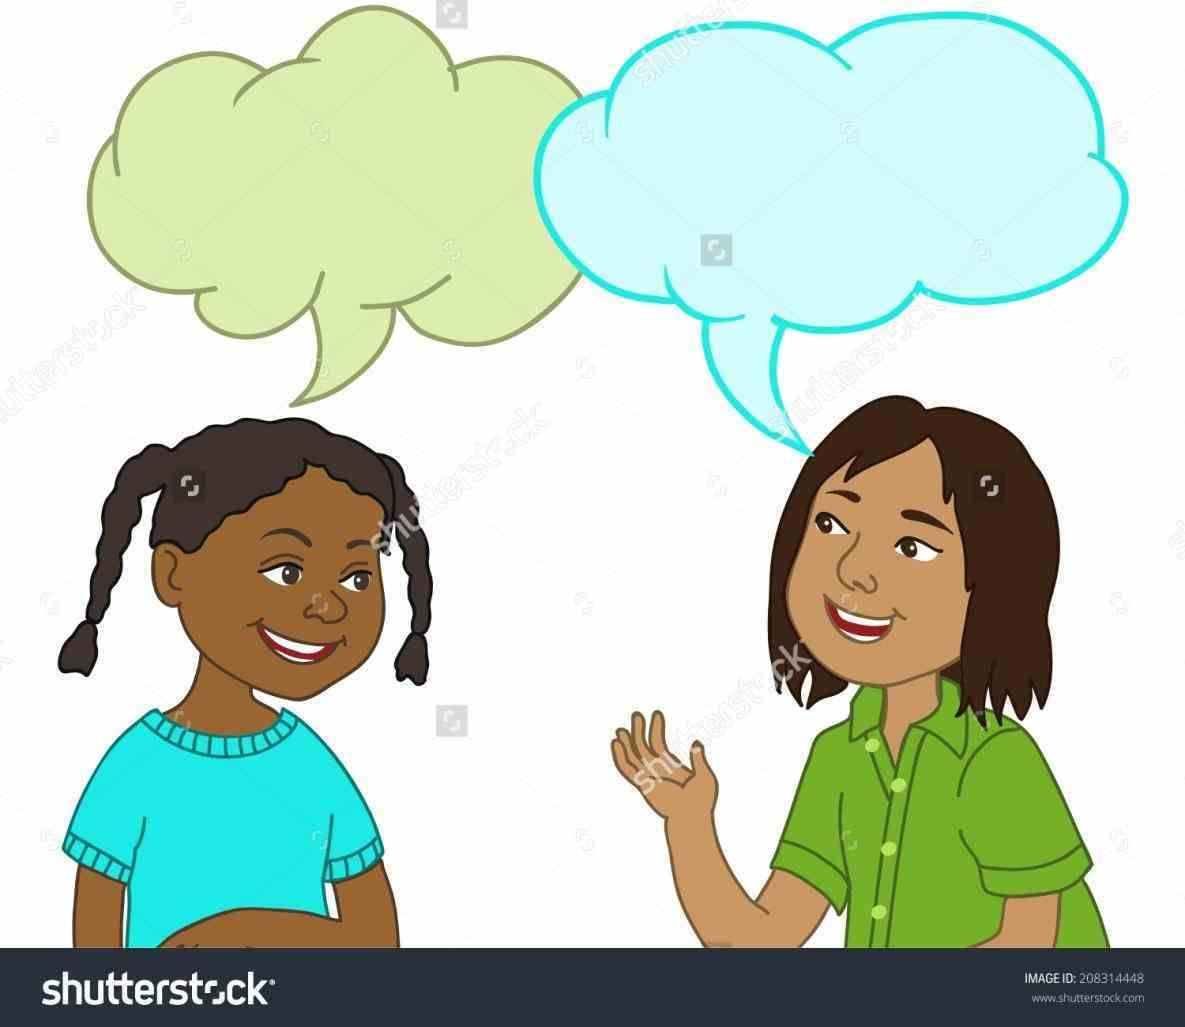 Next Two Kids Talking To Each Other Clipart Sitting Next Pictures.